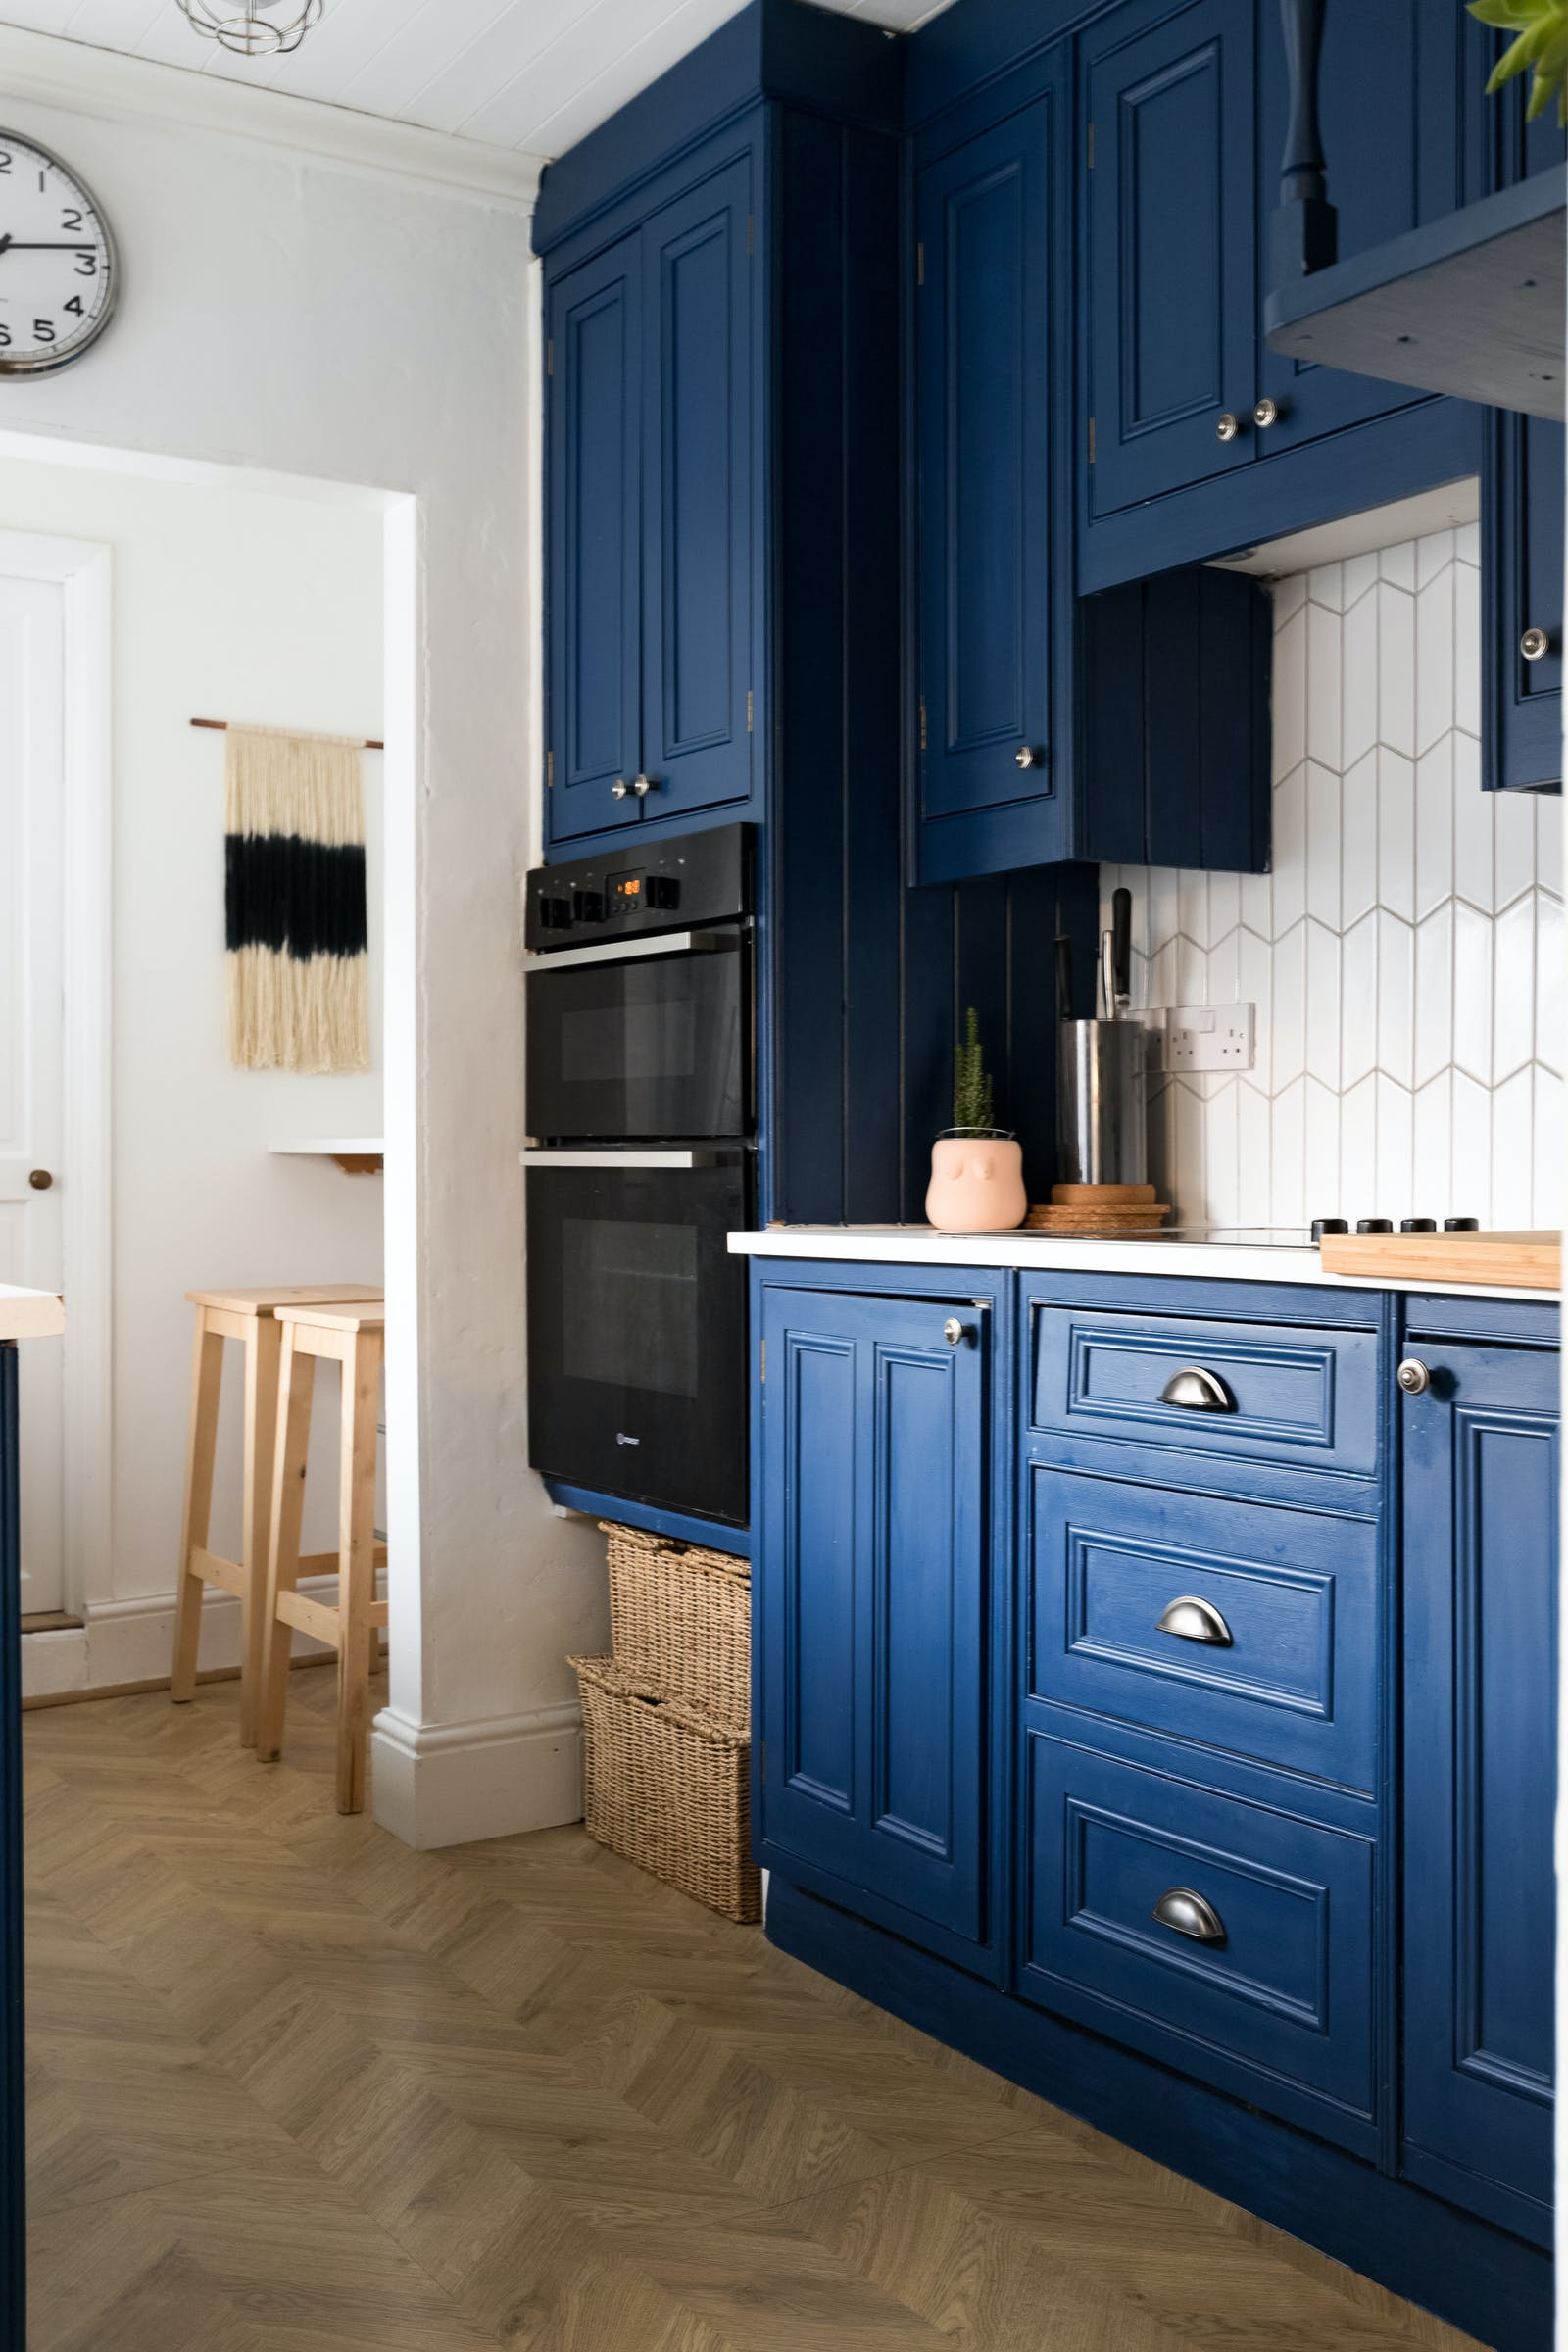 Kitchen cupboards painted in a navy blue